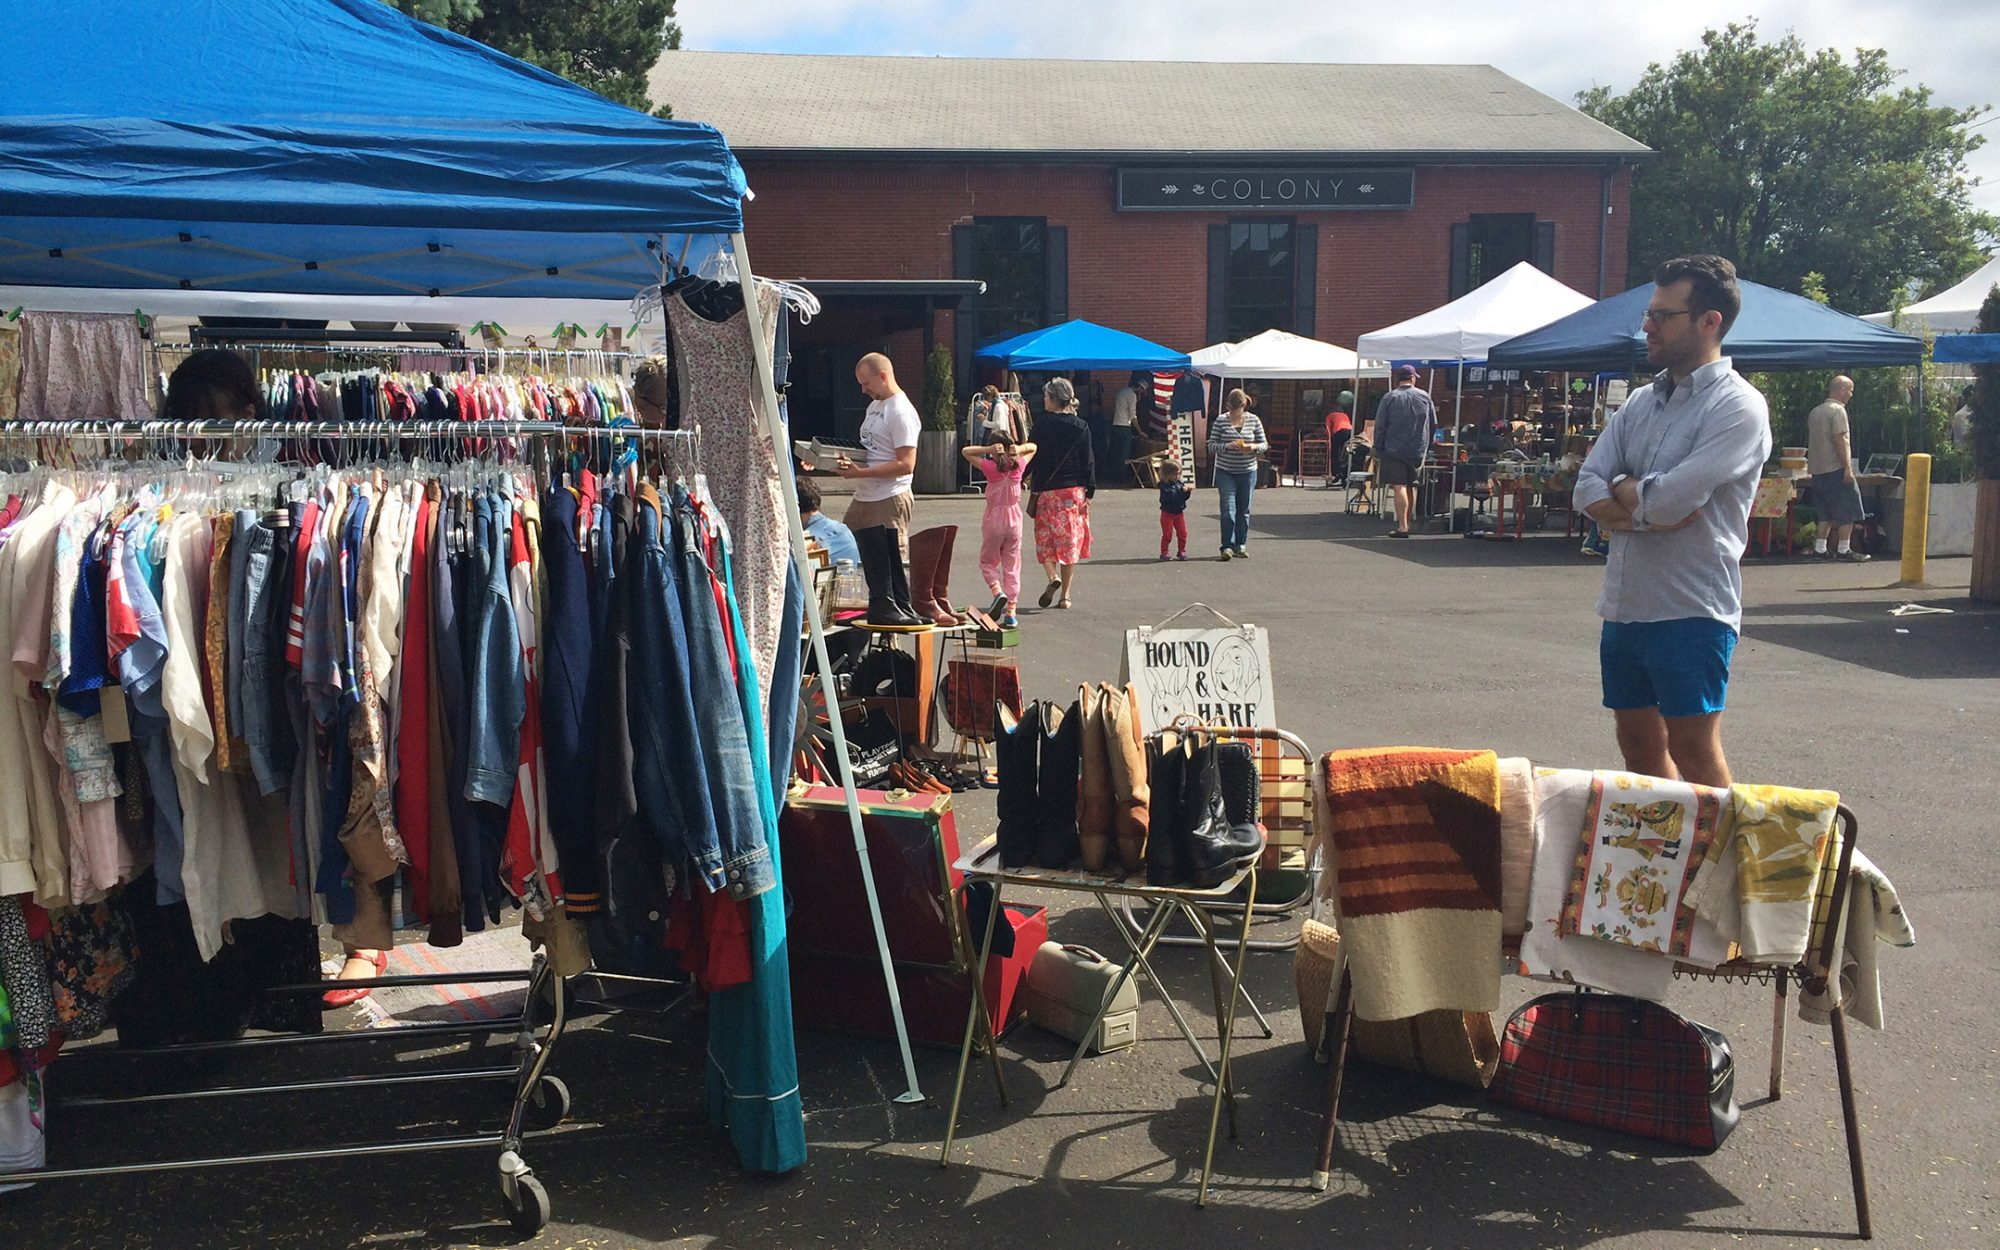 Our Guide to Shopping the Portland Flea